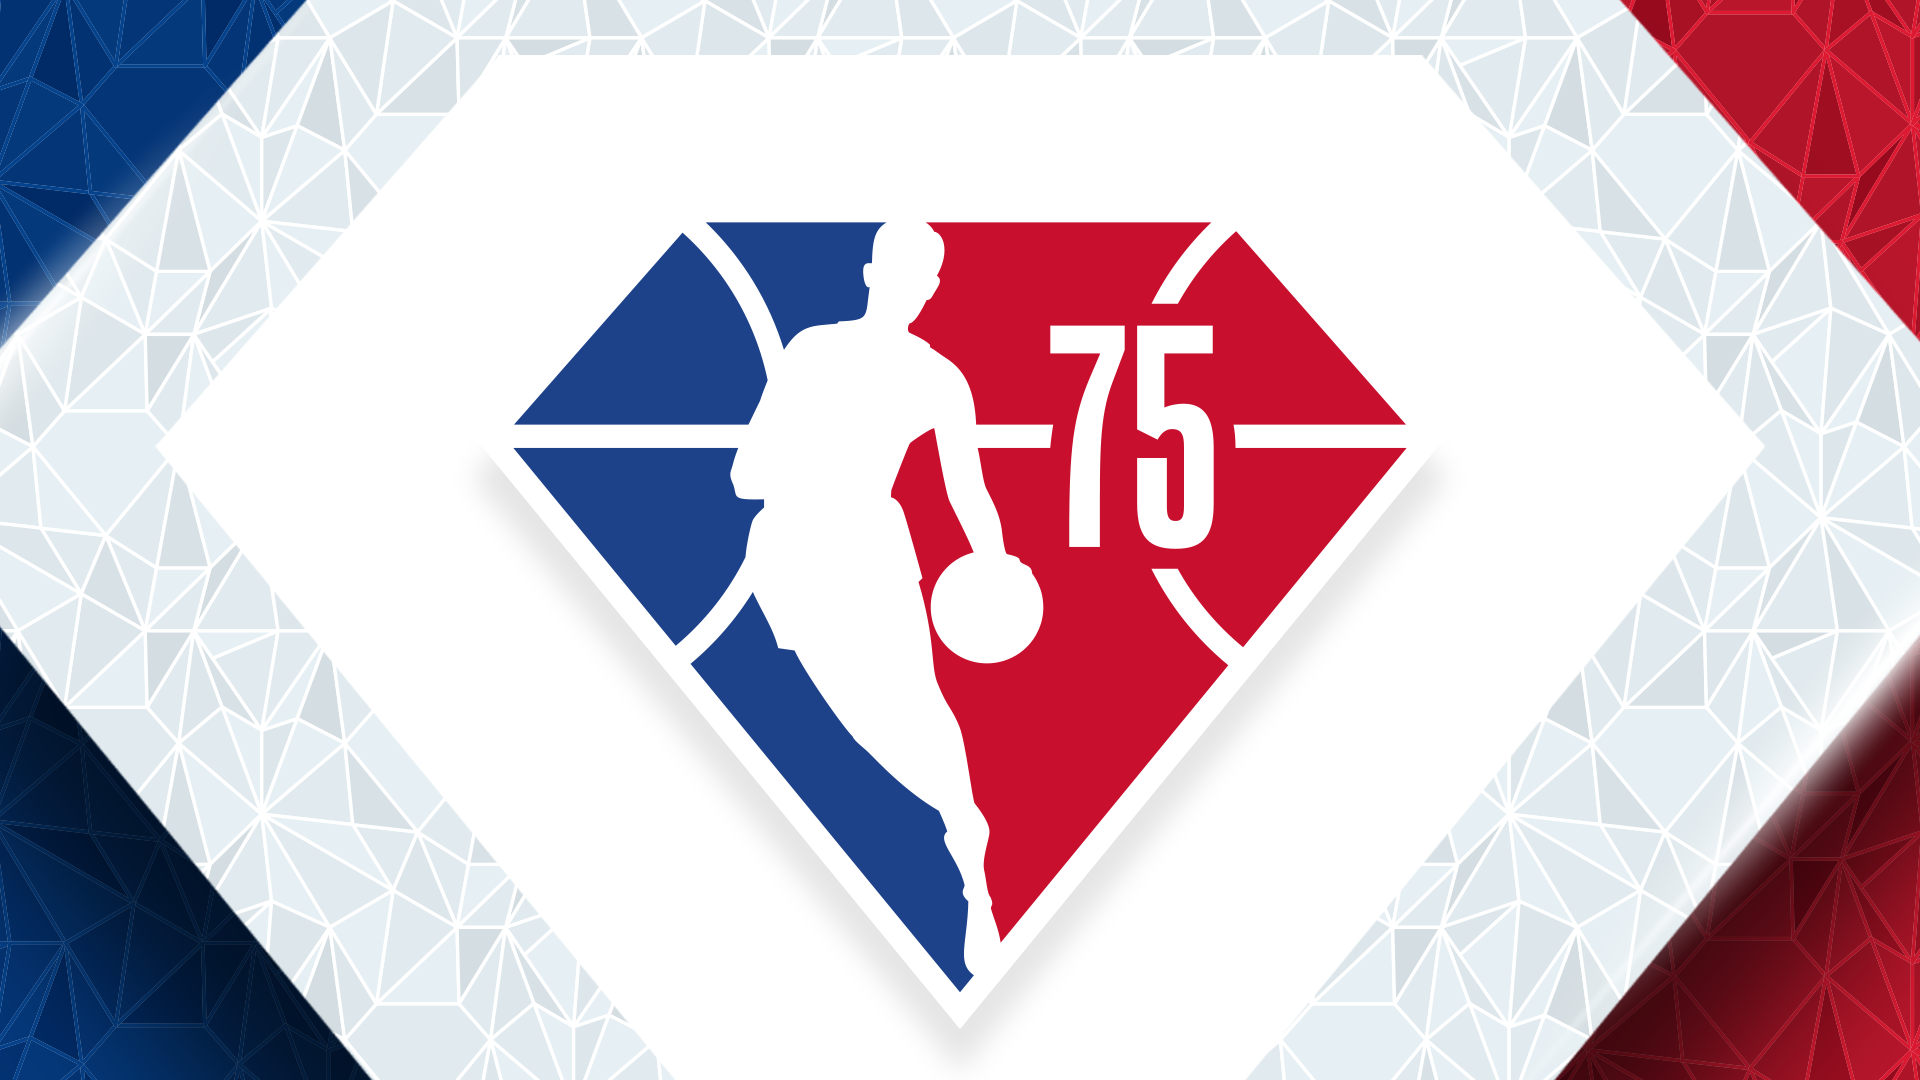 NBA to name 75 greatest players for 75th anniversary